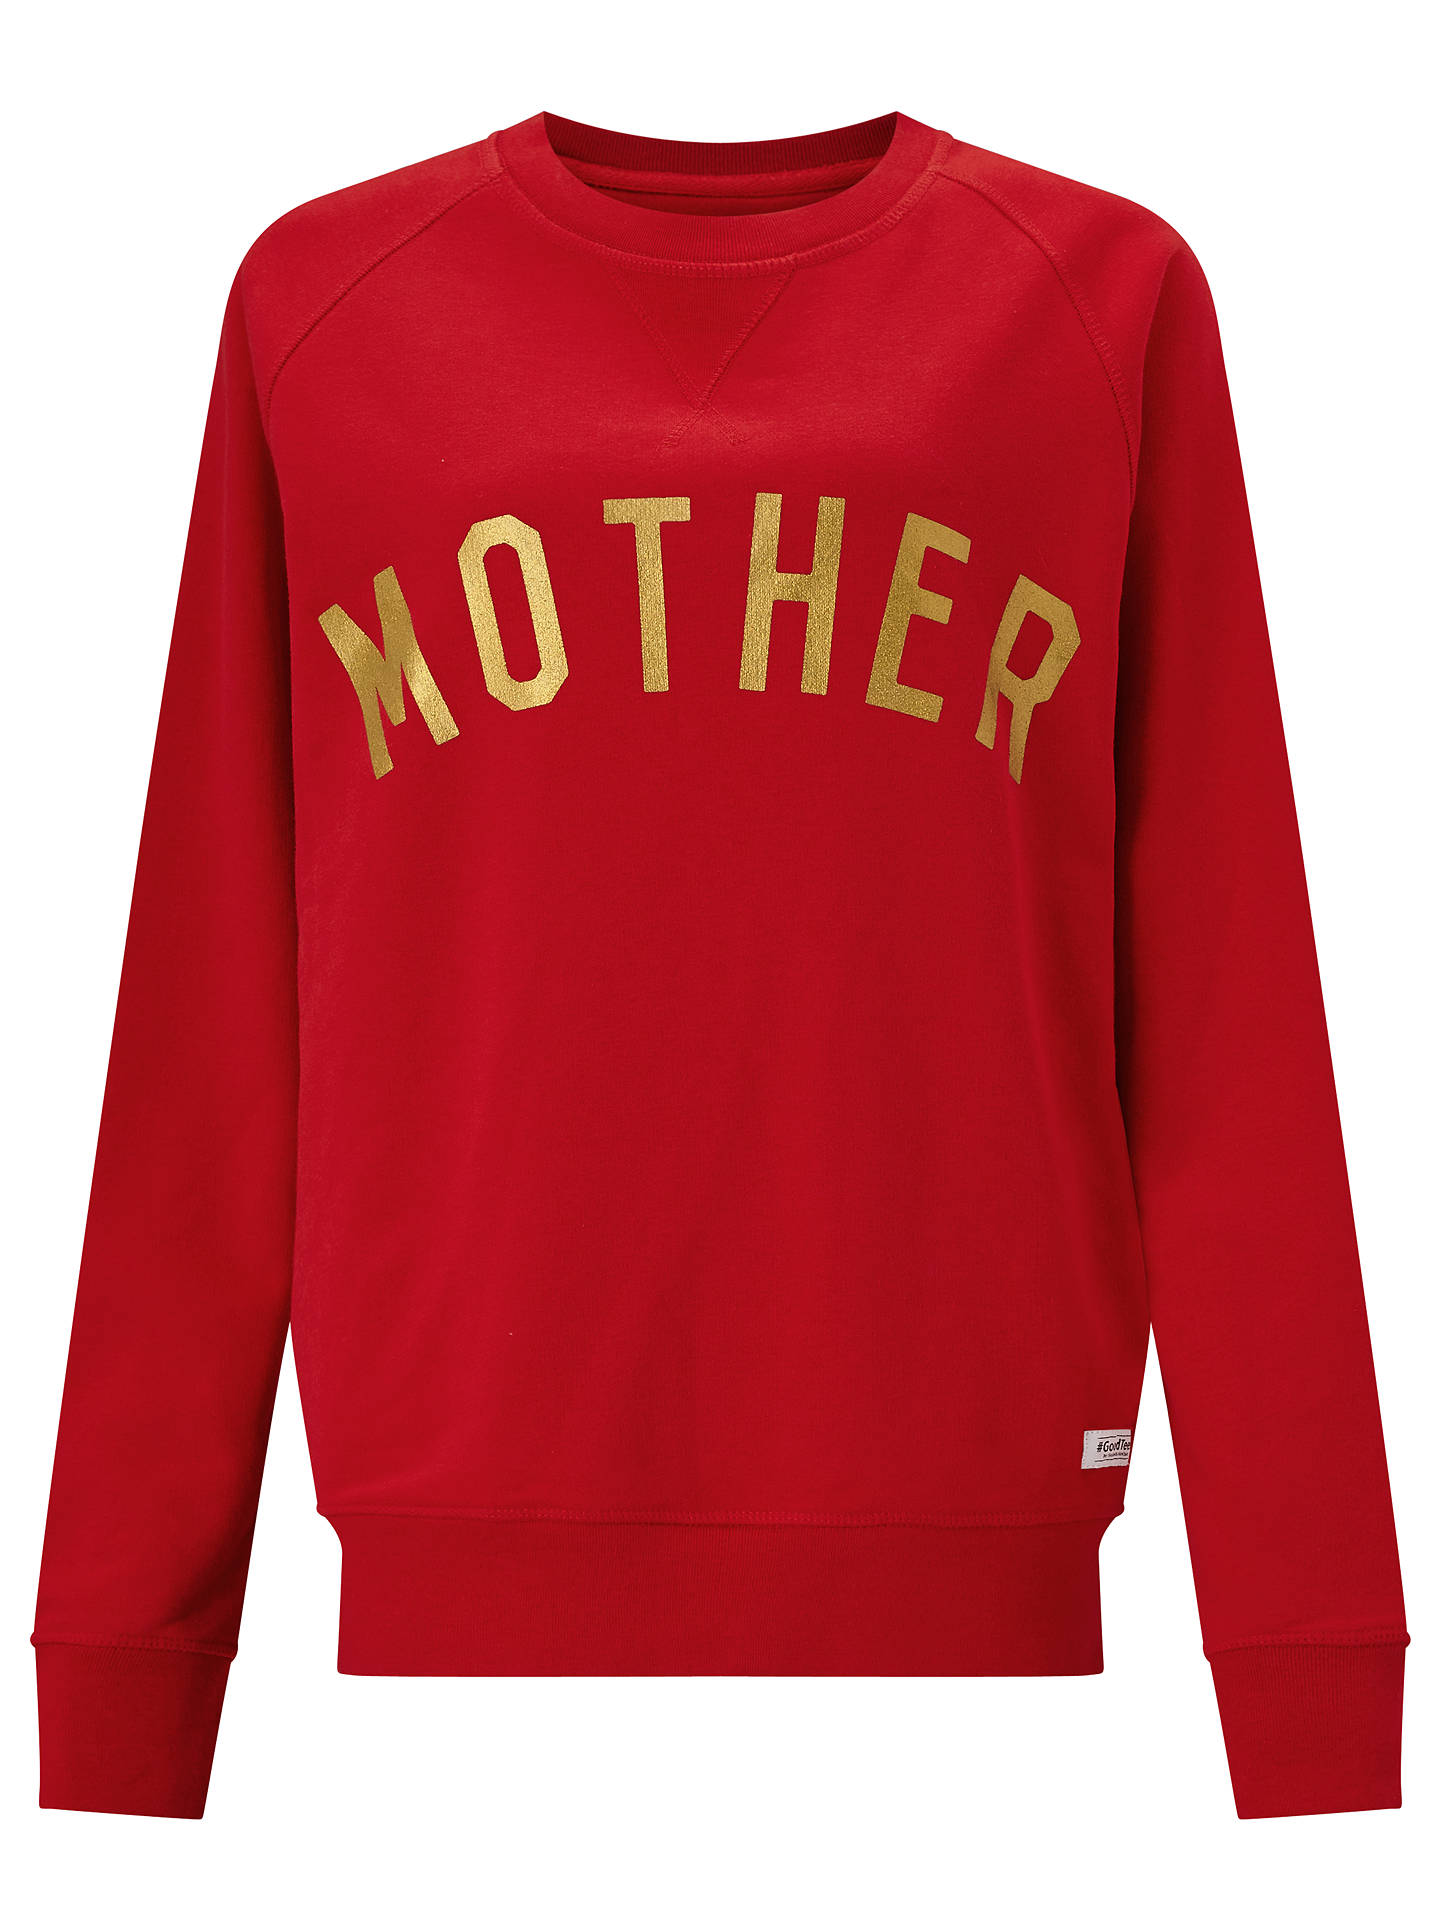 BuySelfish Mother Mother Crew Neck Sweatshirt, Red/Gold, S Online at johnlewis.com